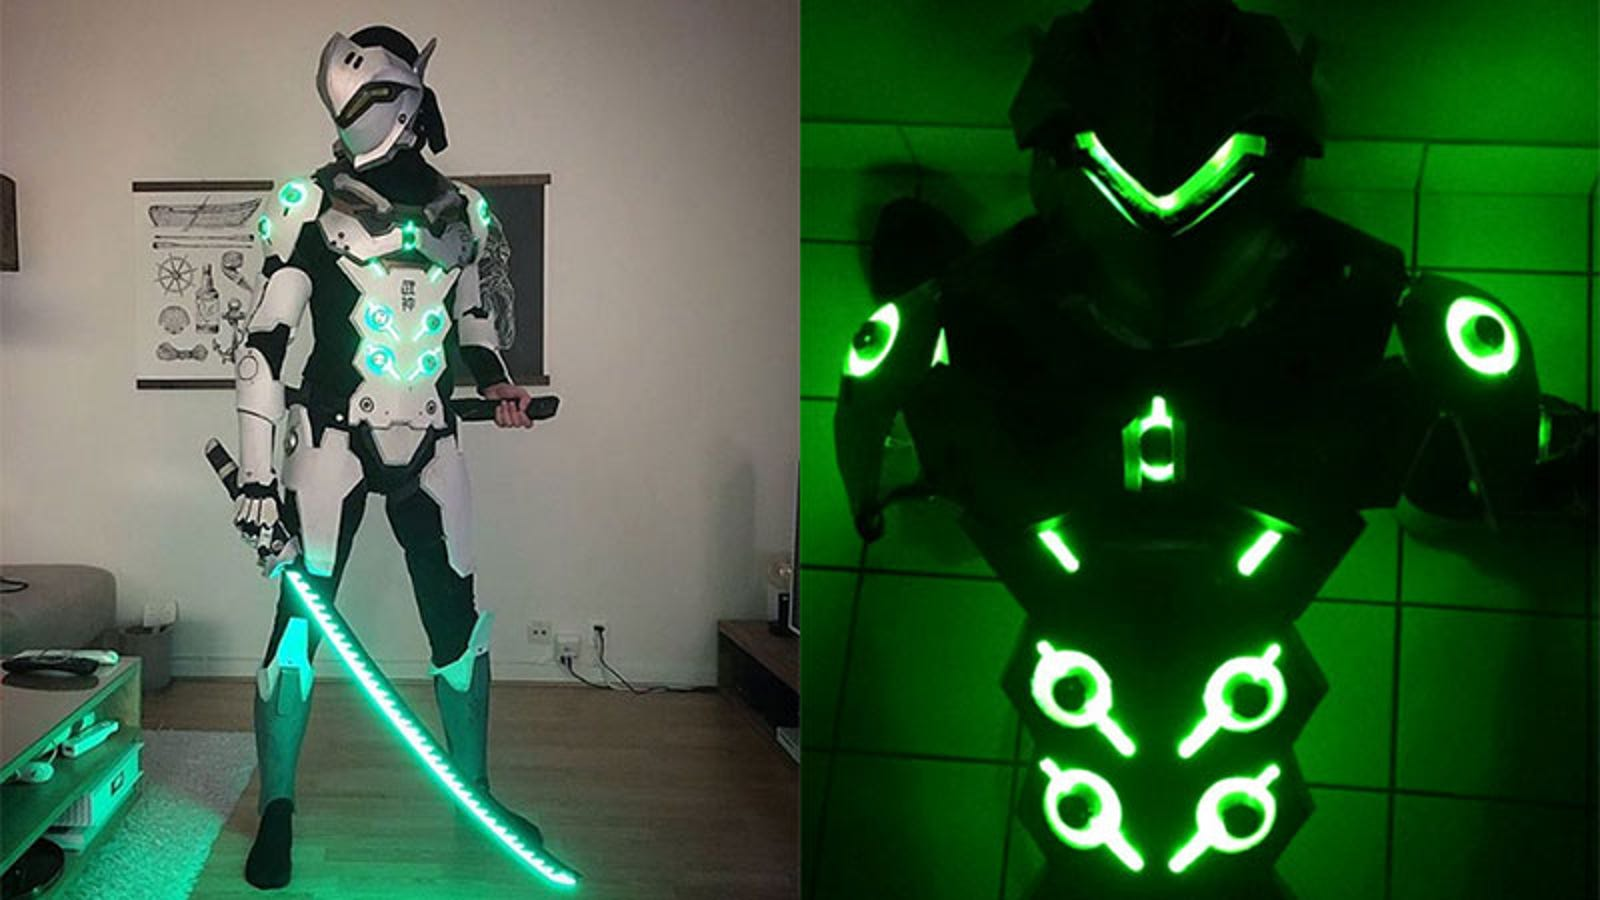 overwatch genji cosplay is on another level